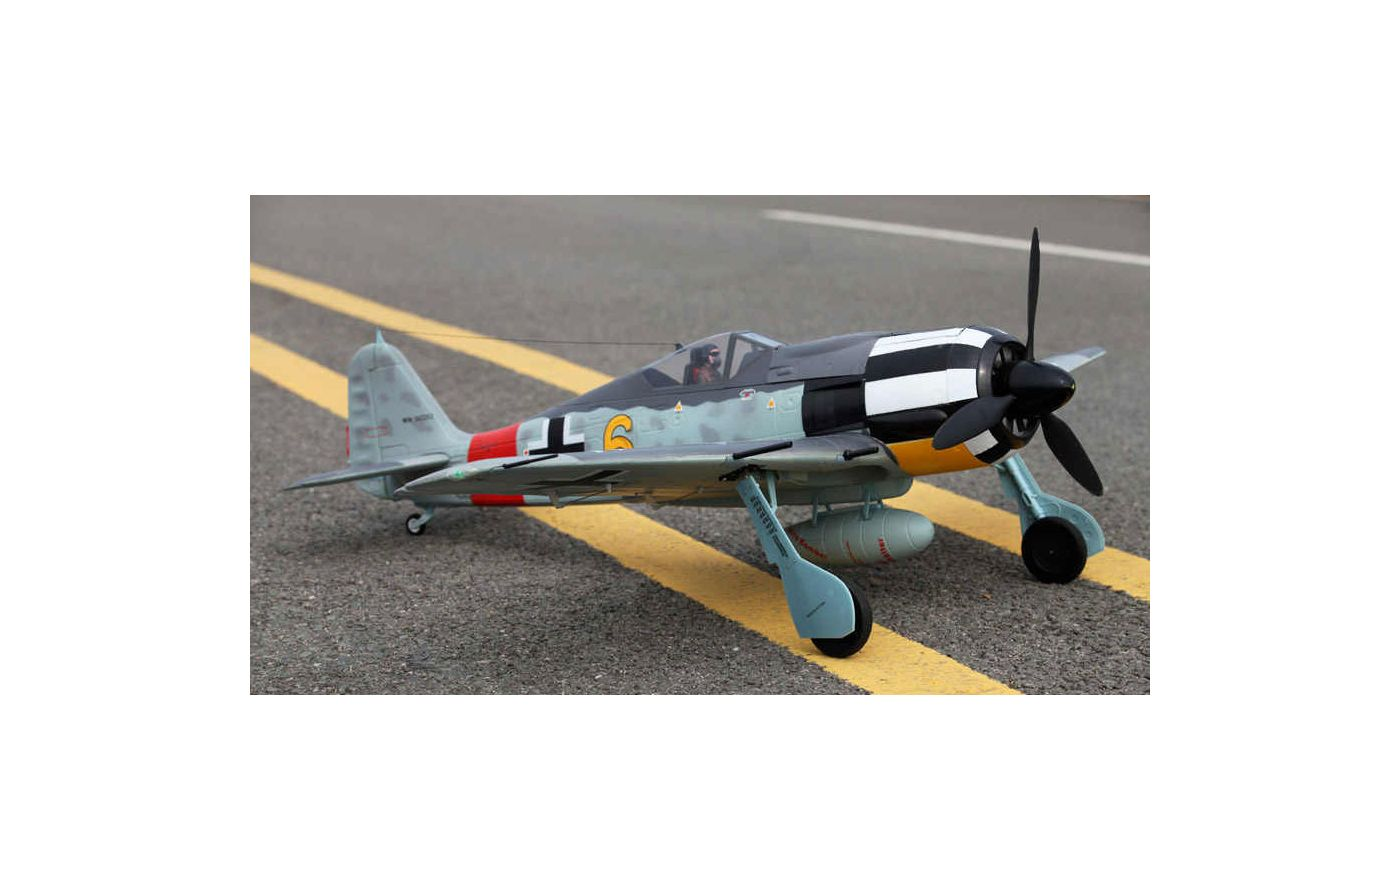 Image for FW190-Y6 1400mm, PNP from Force RC